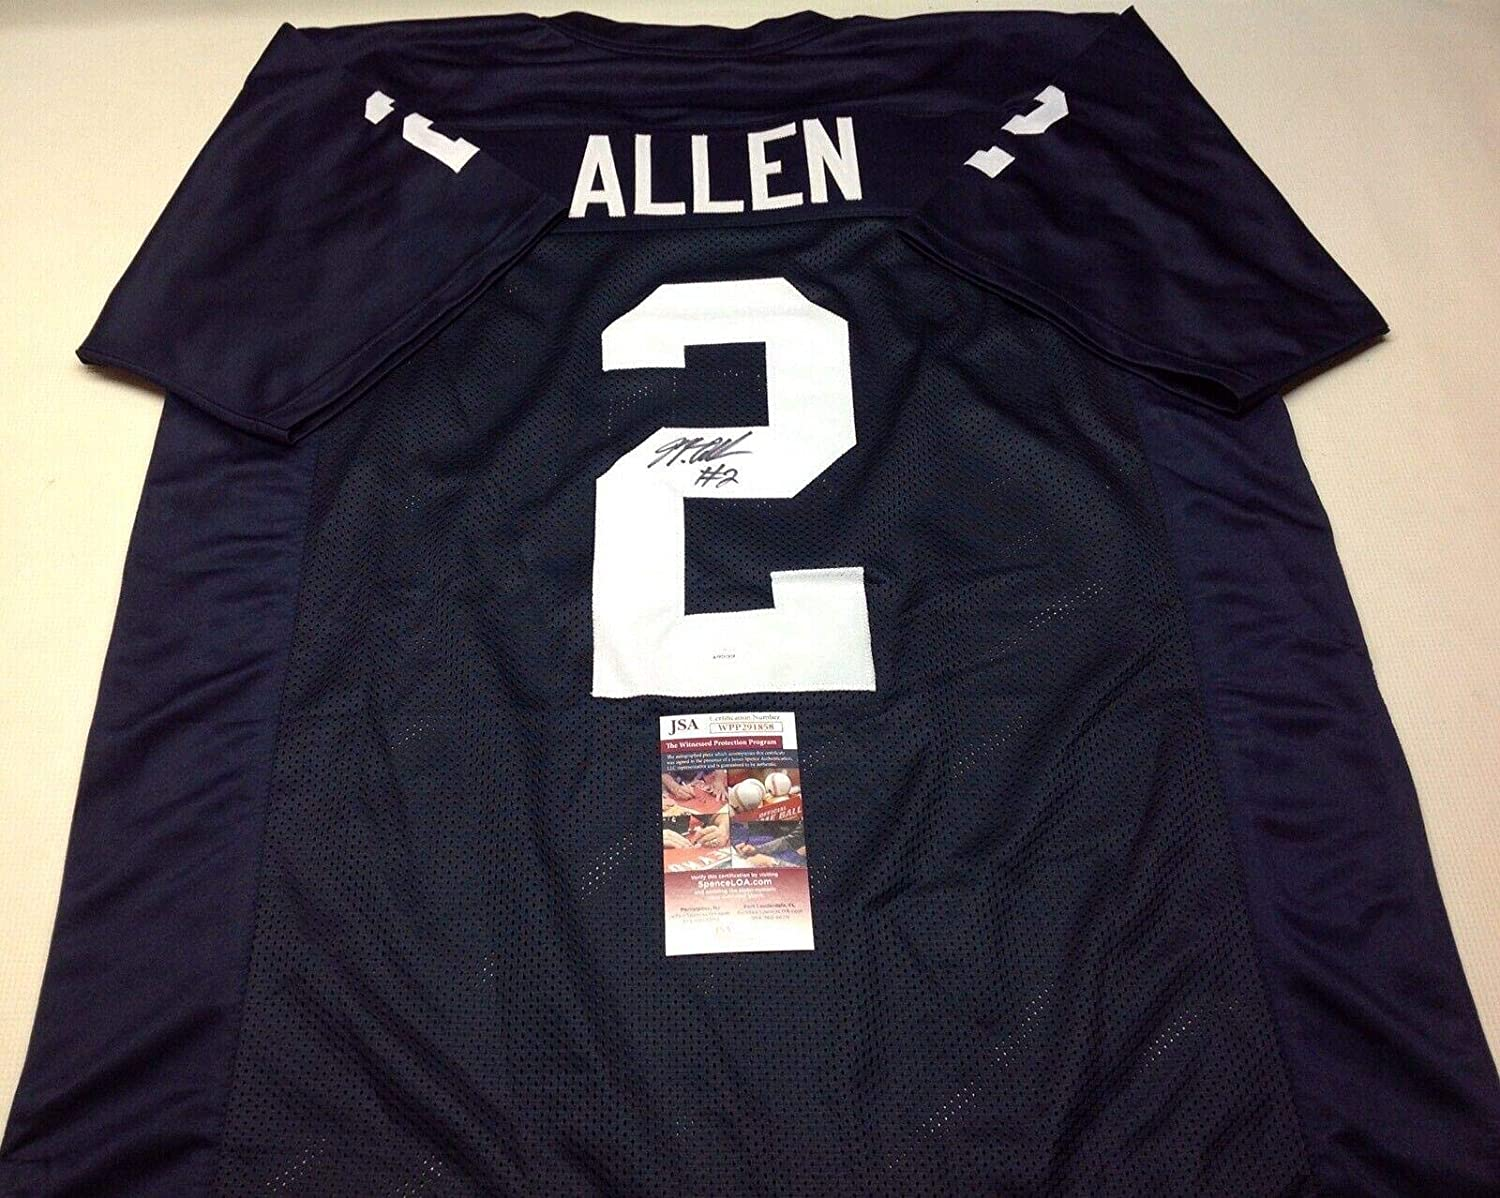 purchase cheap 6b1a8 3cbde Marcus Allen Signed Jersey - Pennstate Nittany Lions Blue ...